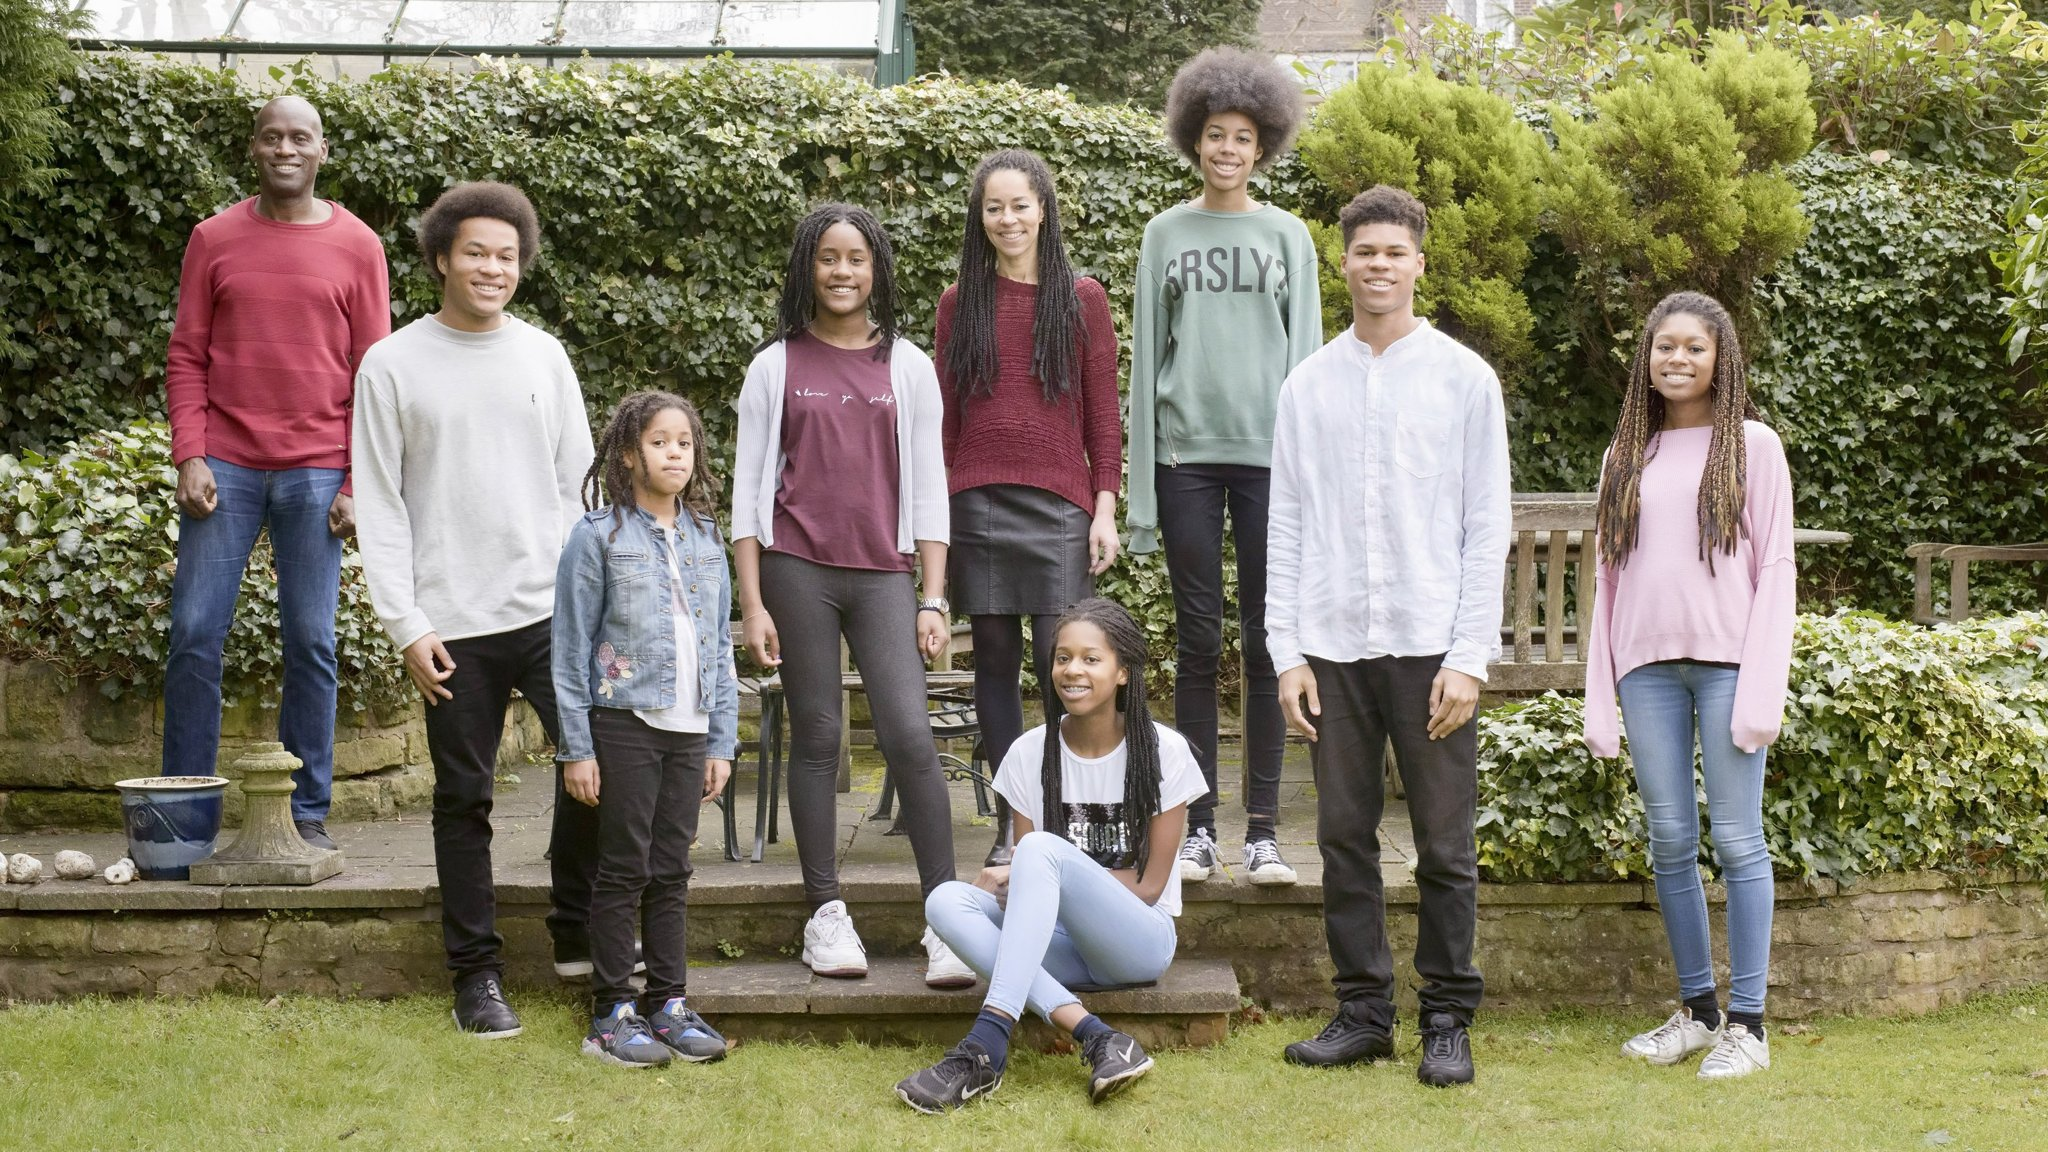 Big brother promotes racial harmony apparently - 2019 year